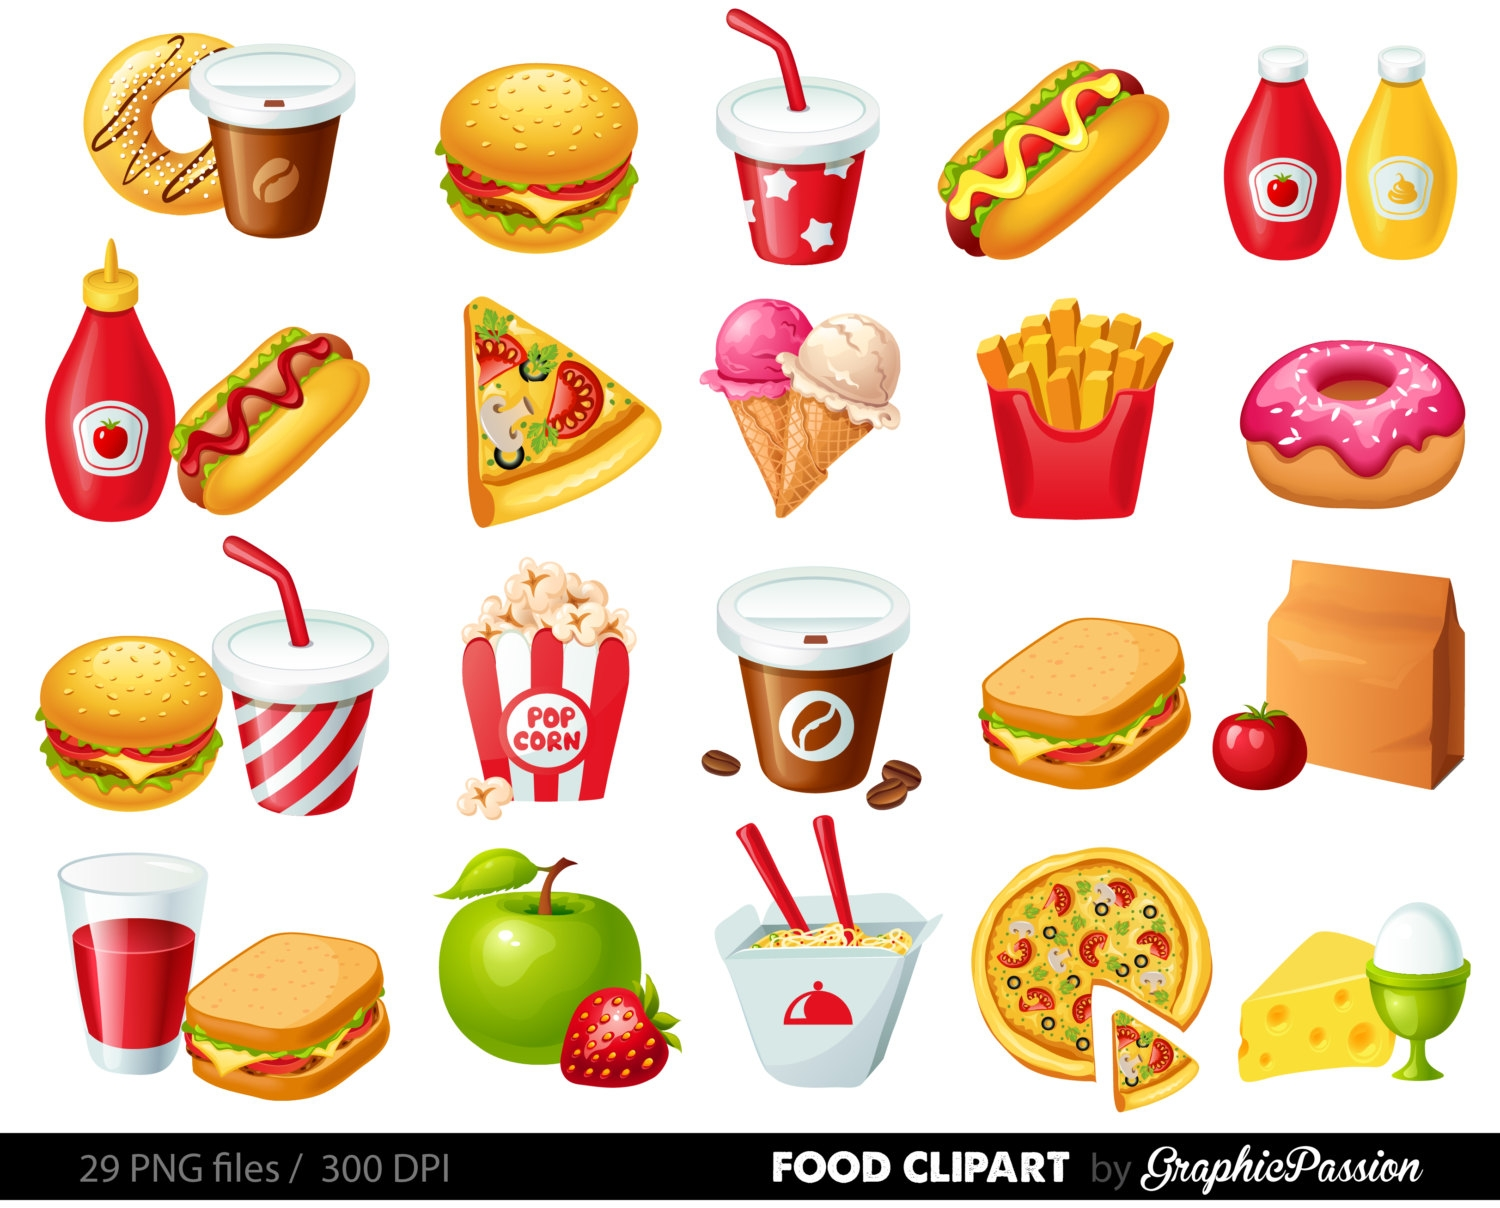 Junk food snacks clipart.